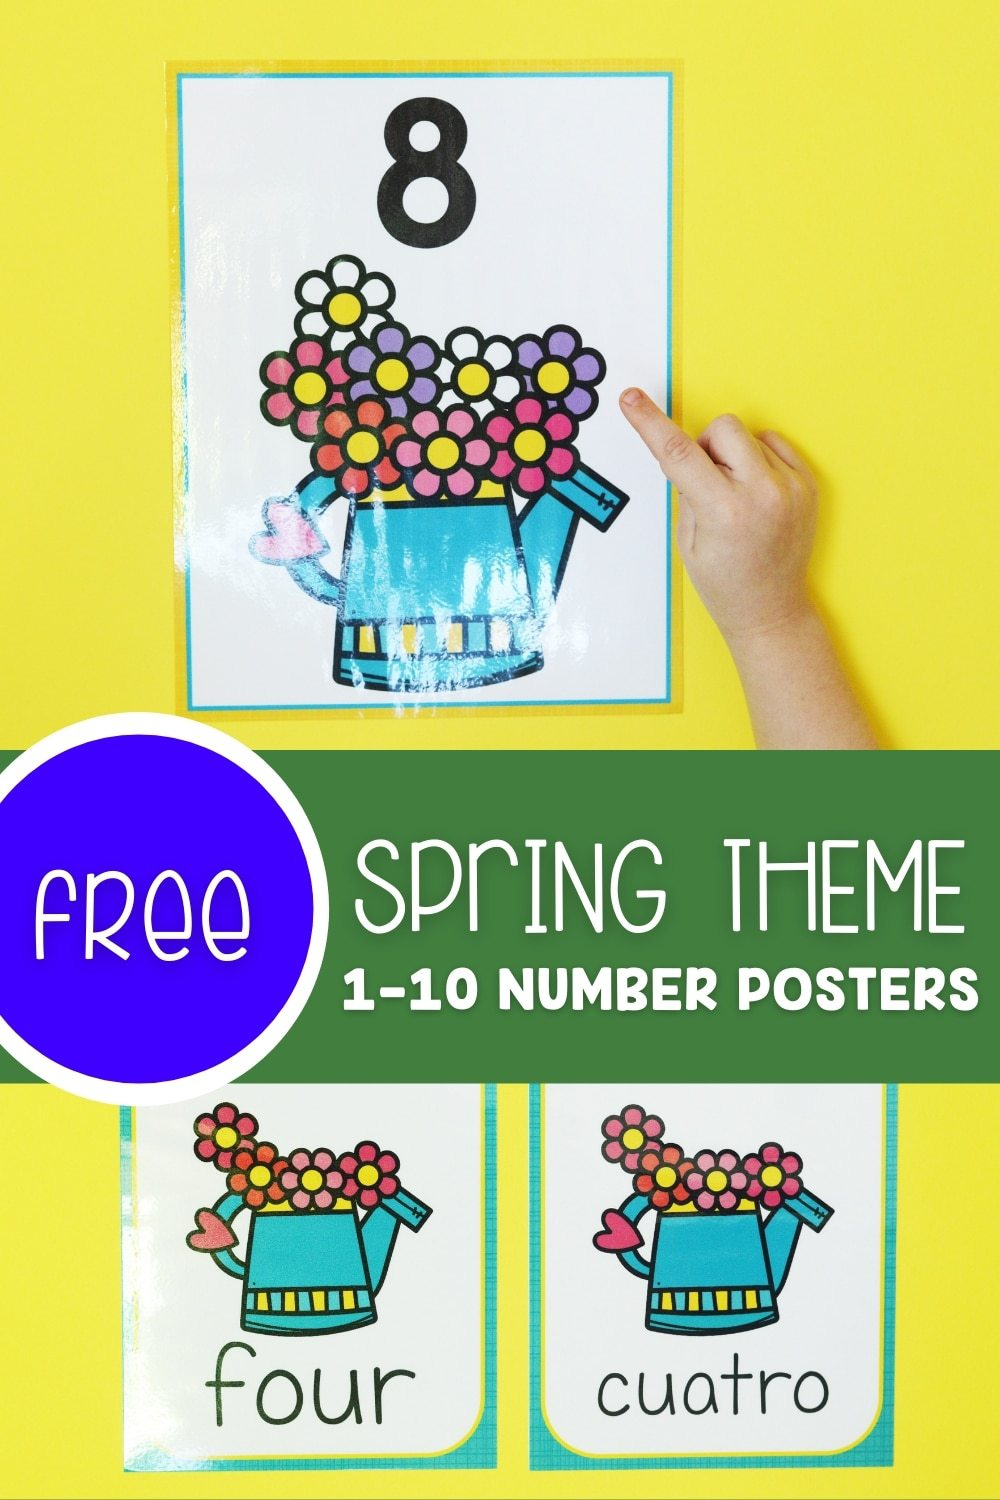 Free Spring Theme 1-10 Number Posters